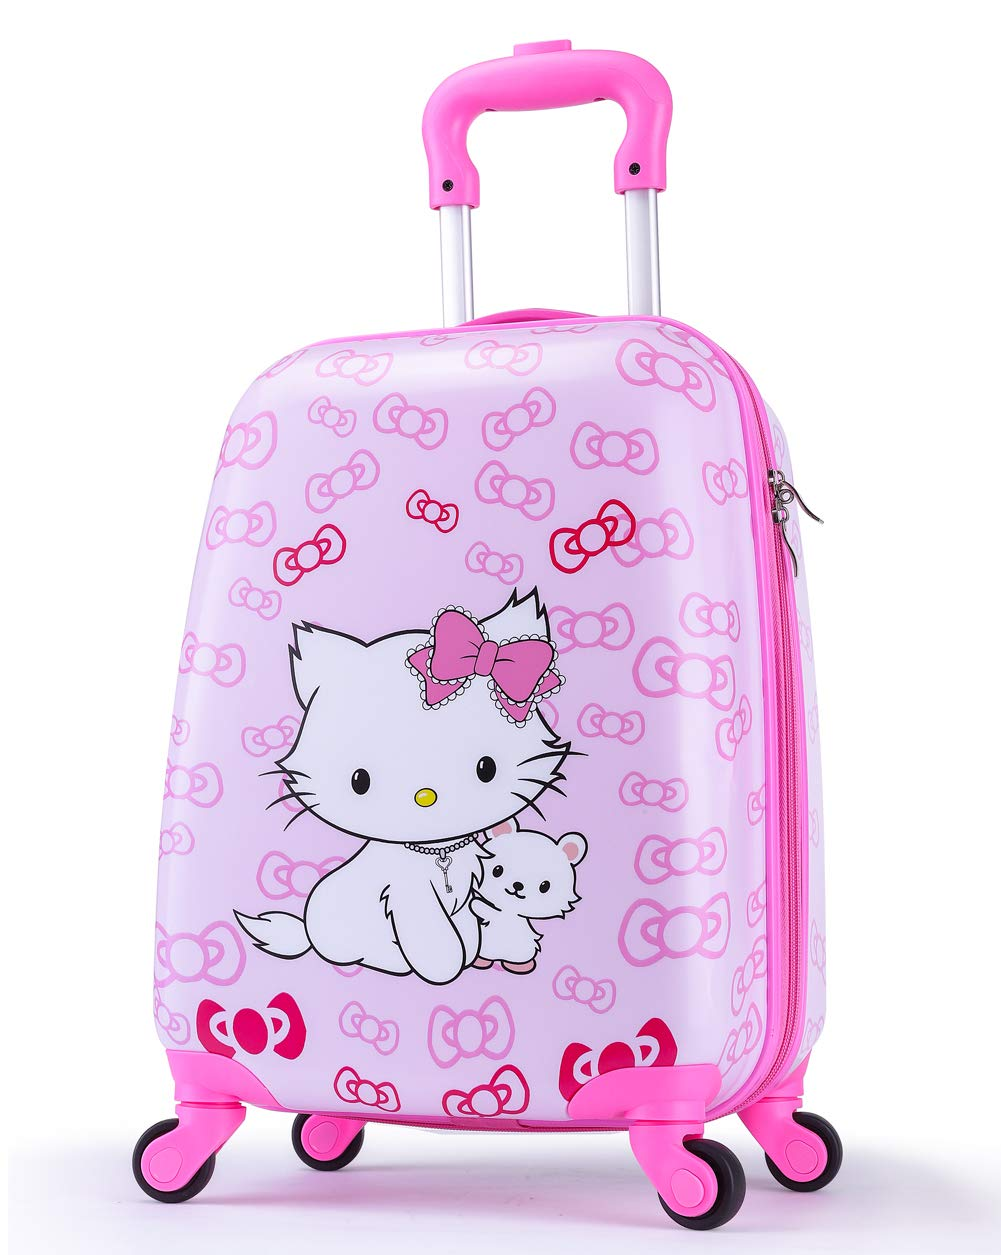 Girls Suitcase Hardshell Spinner Wheels - Kids Luggage 18 inch Carry On Bowknot Cat Travel Trolley LeLeTian